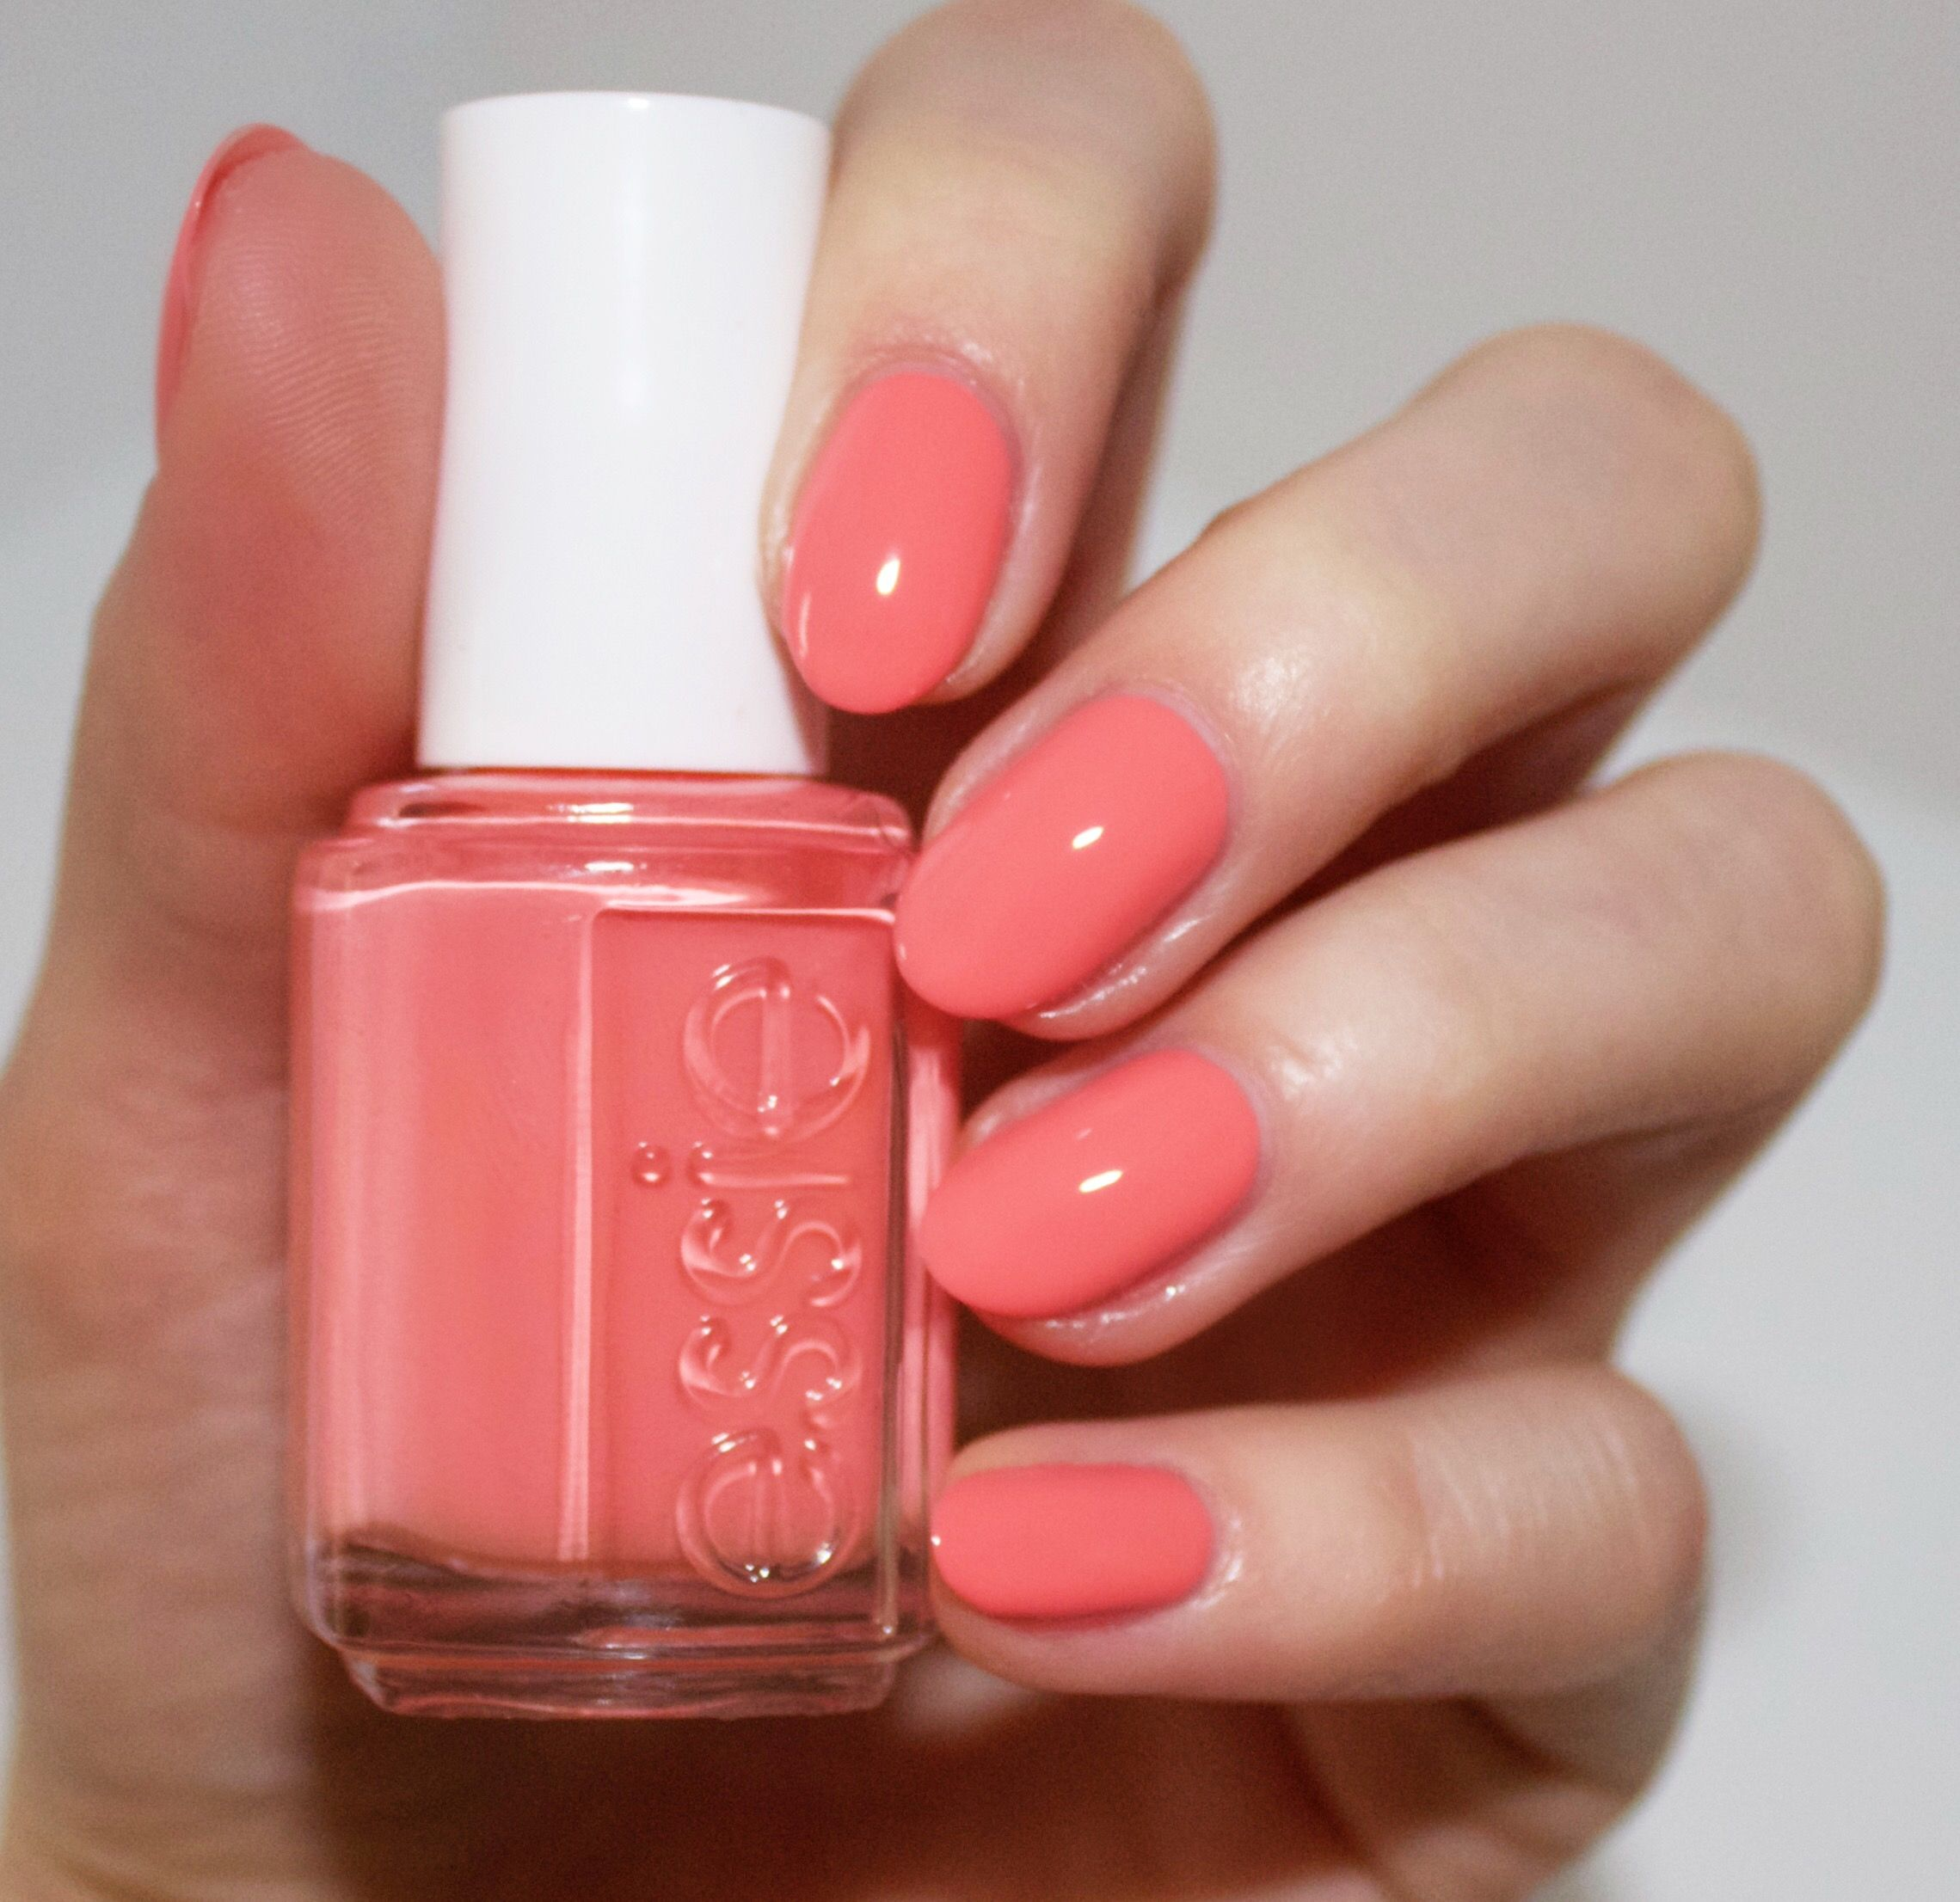 List Of Nail Polish Colors: Essie Spring 2016 Collection